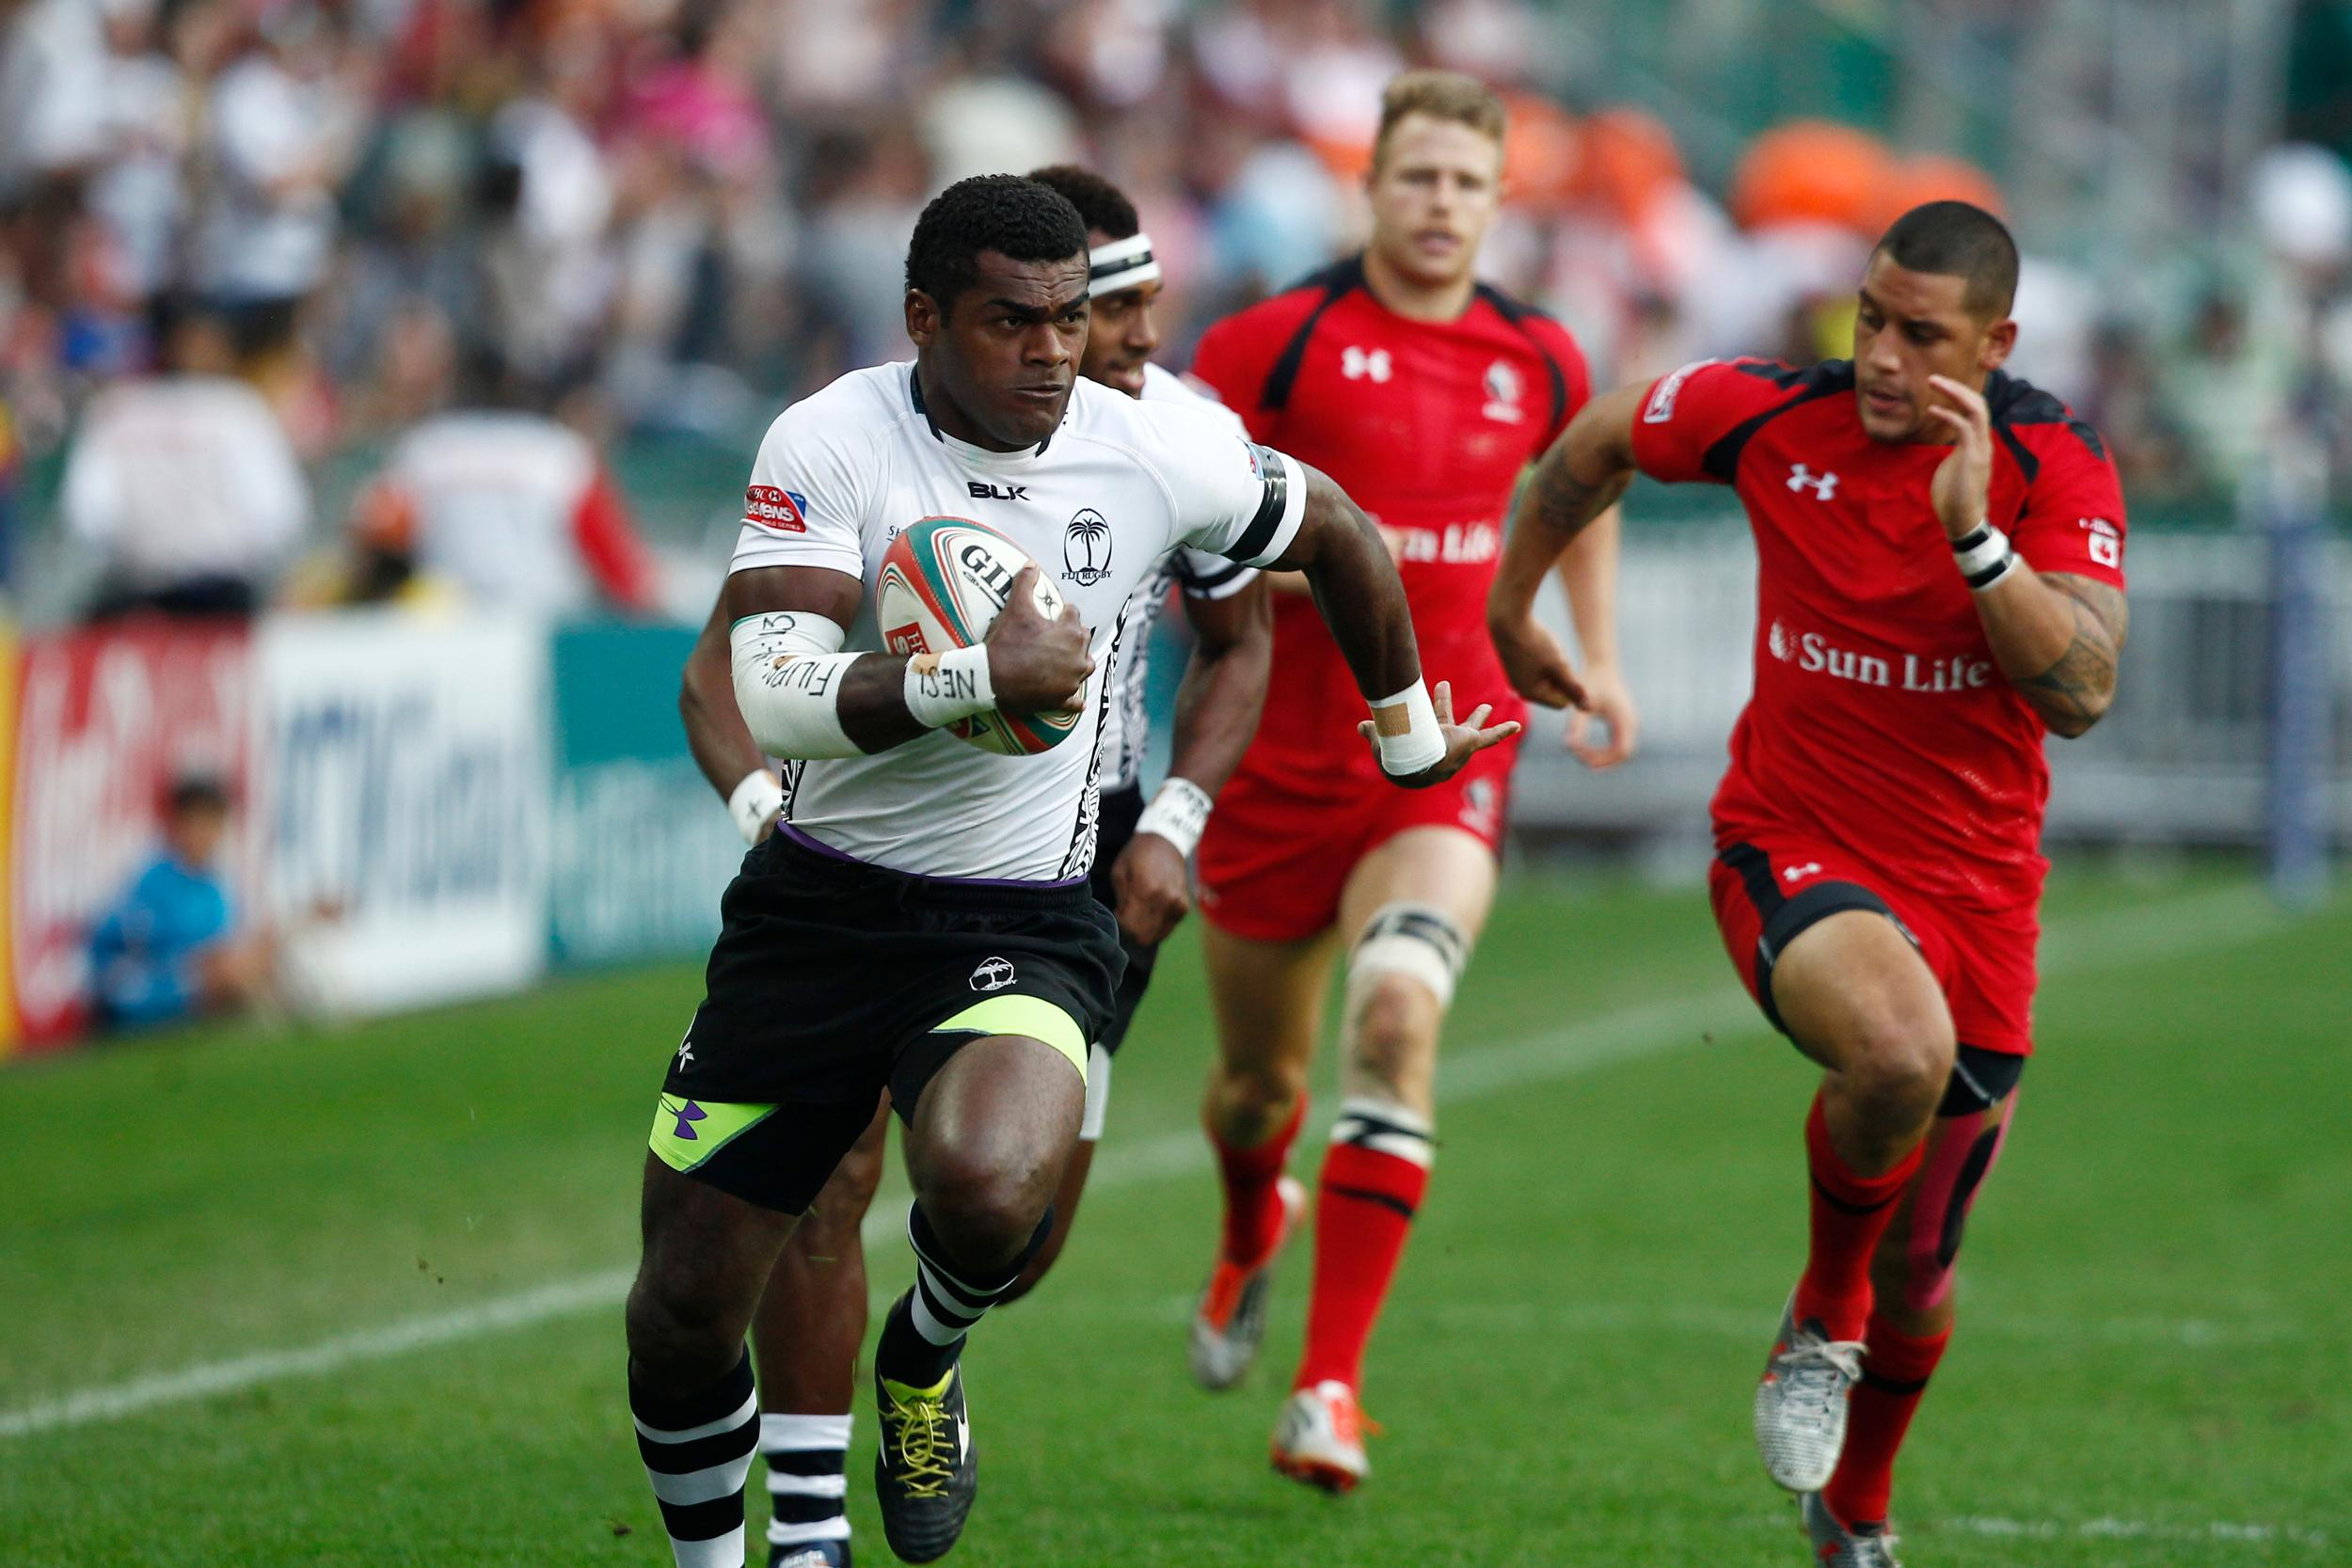 Fiji sealed their place in the quarter-finals after they earned comfortable wins over Belgium and Canada on day two in Hong Kong ©World Rugby